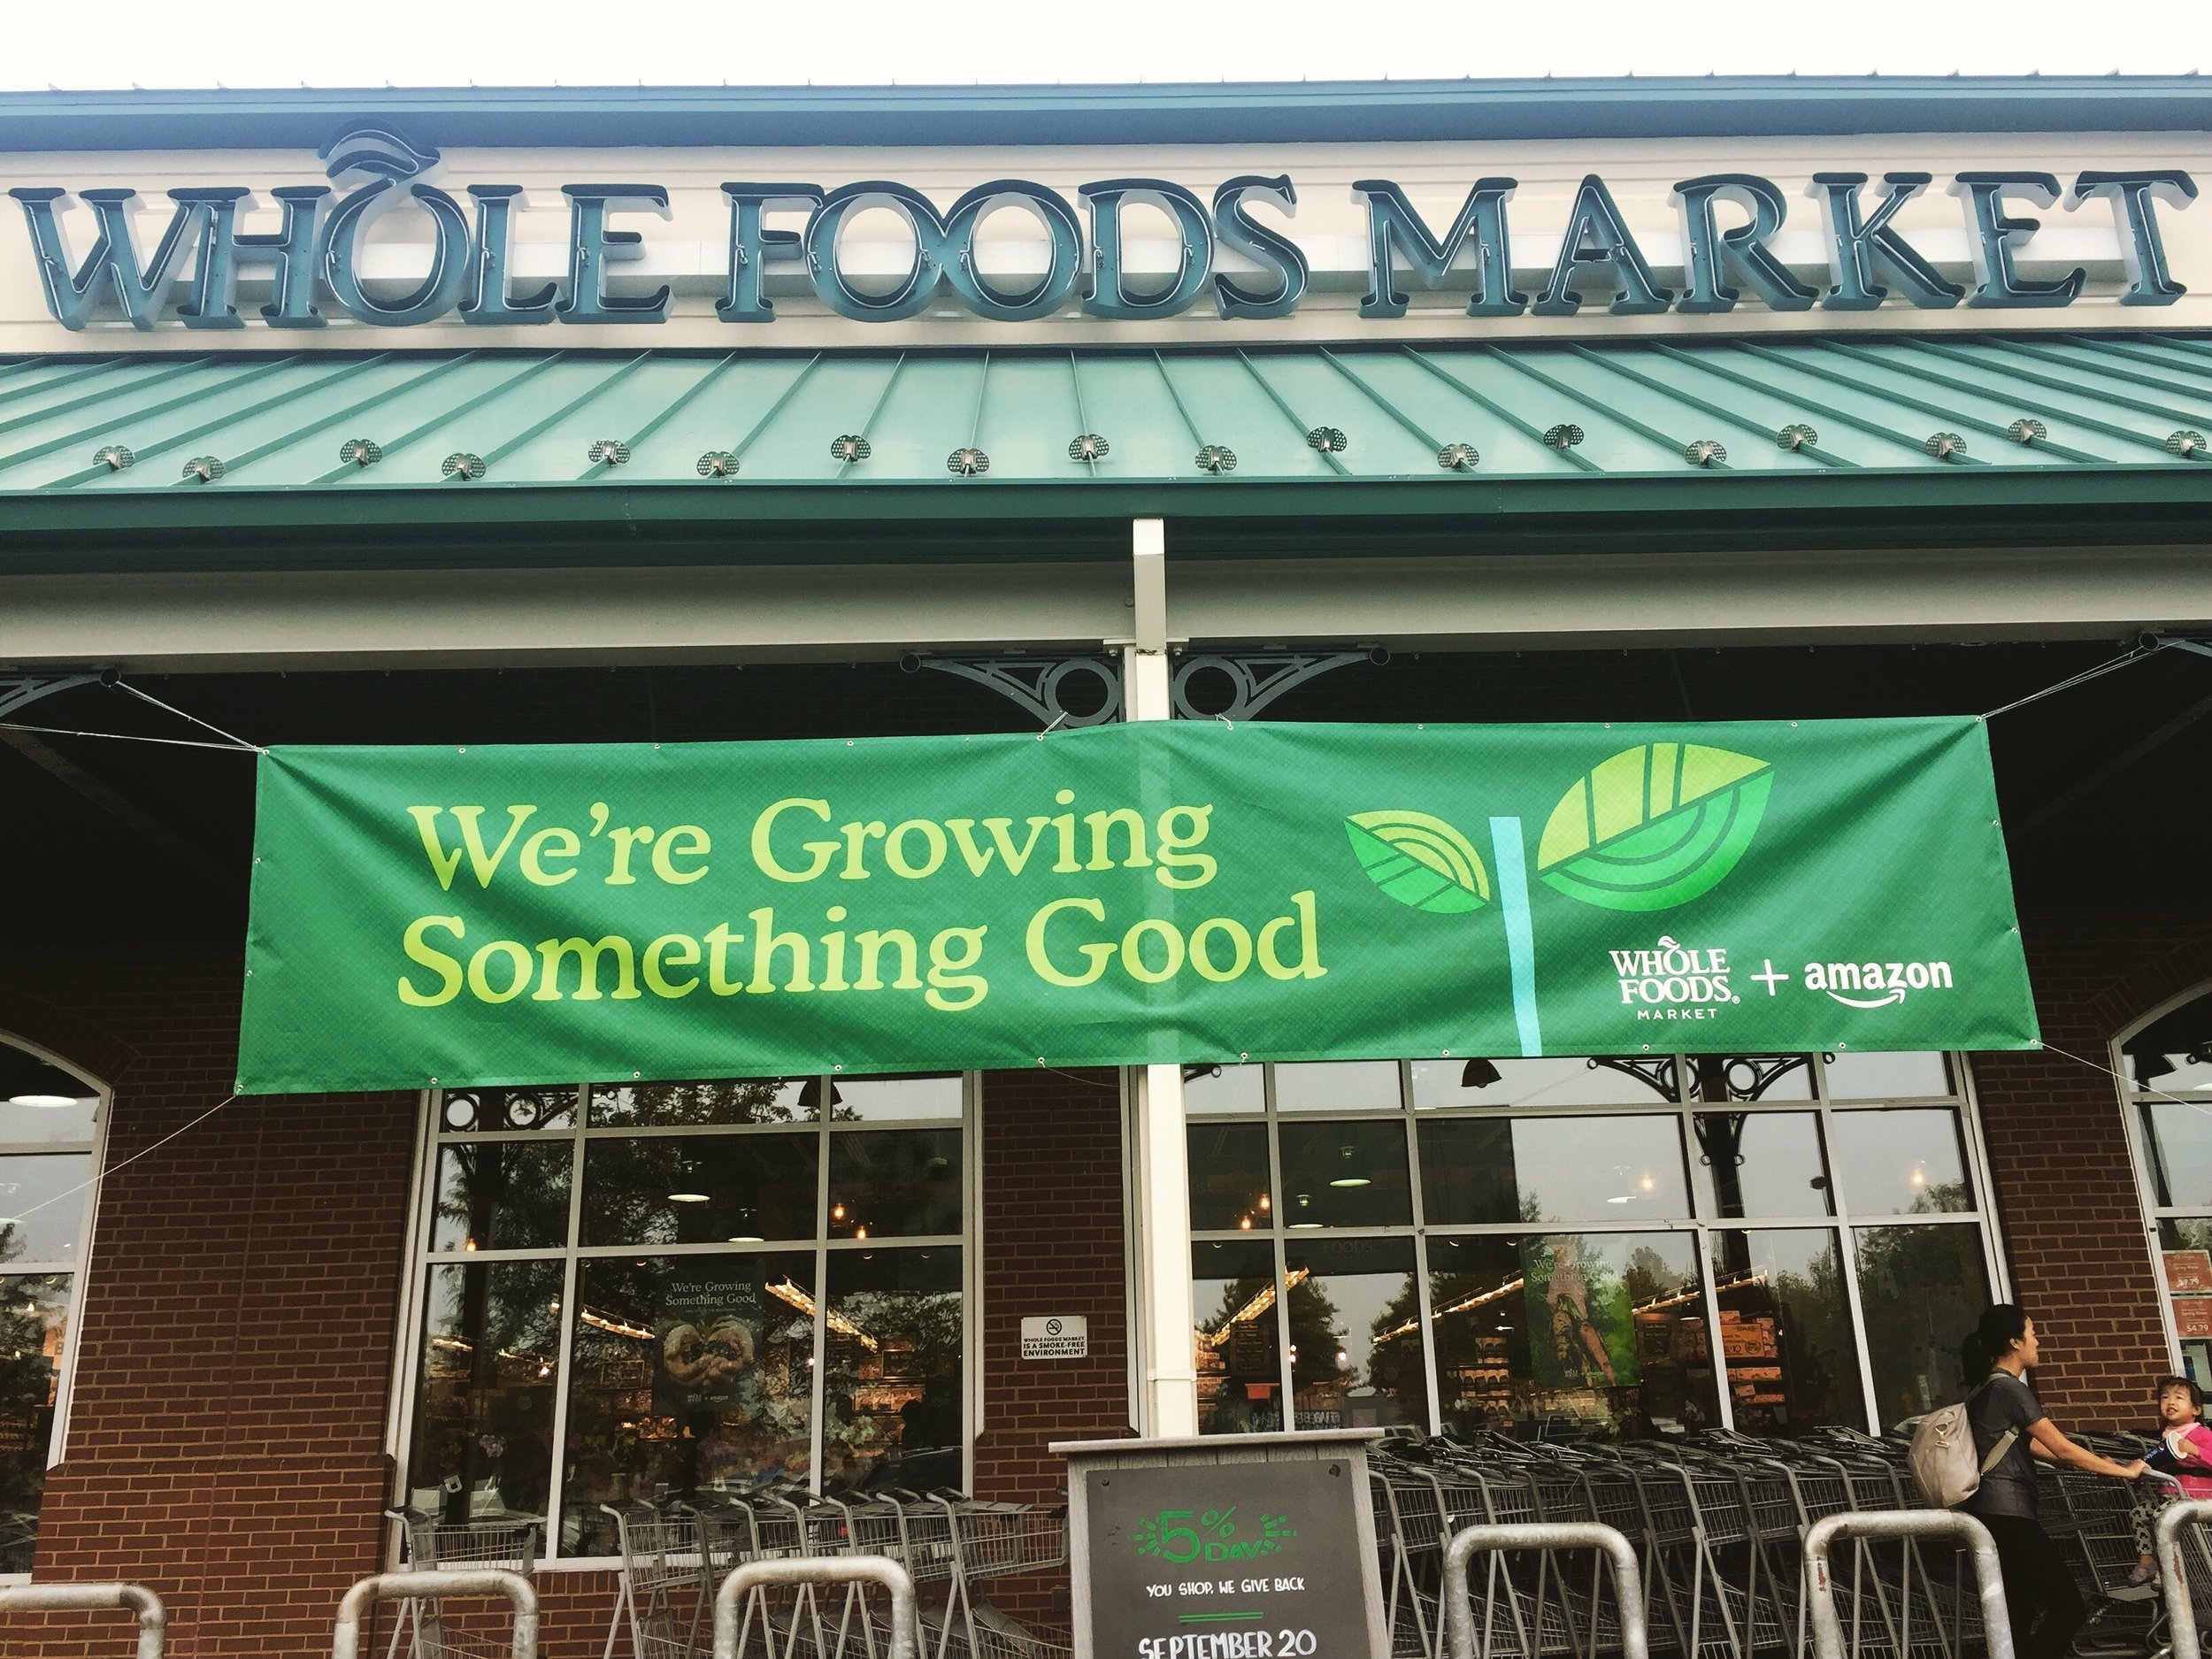 New banner outside a Whole Foods Market store in Gaithersburg, Maryland